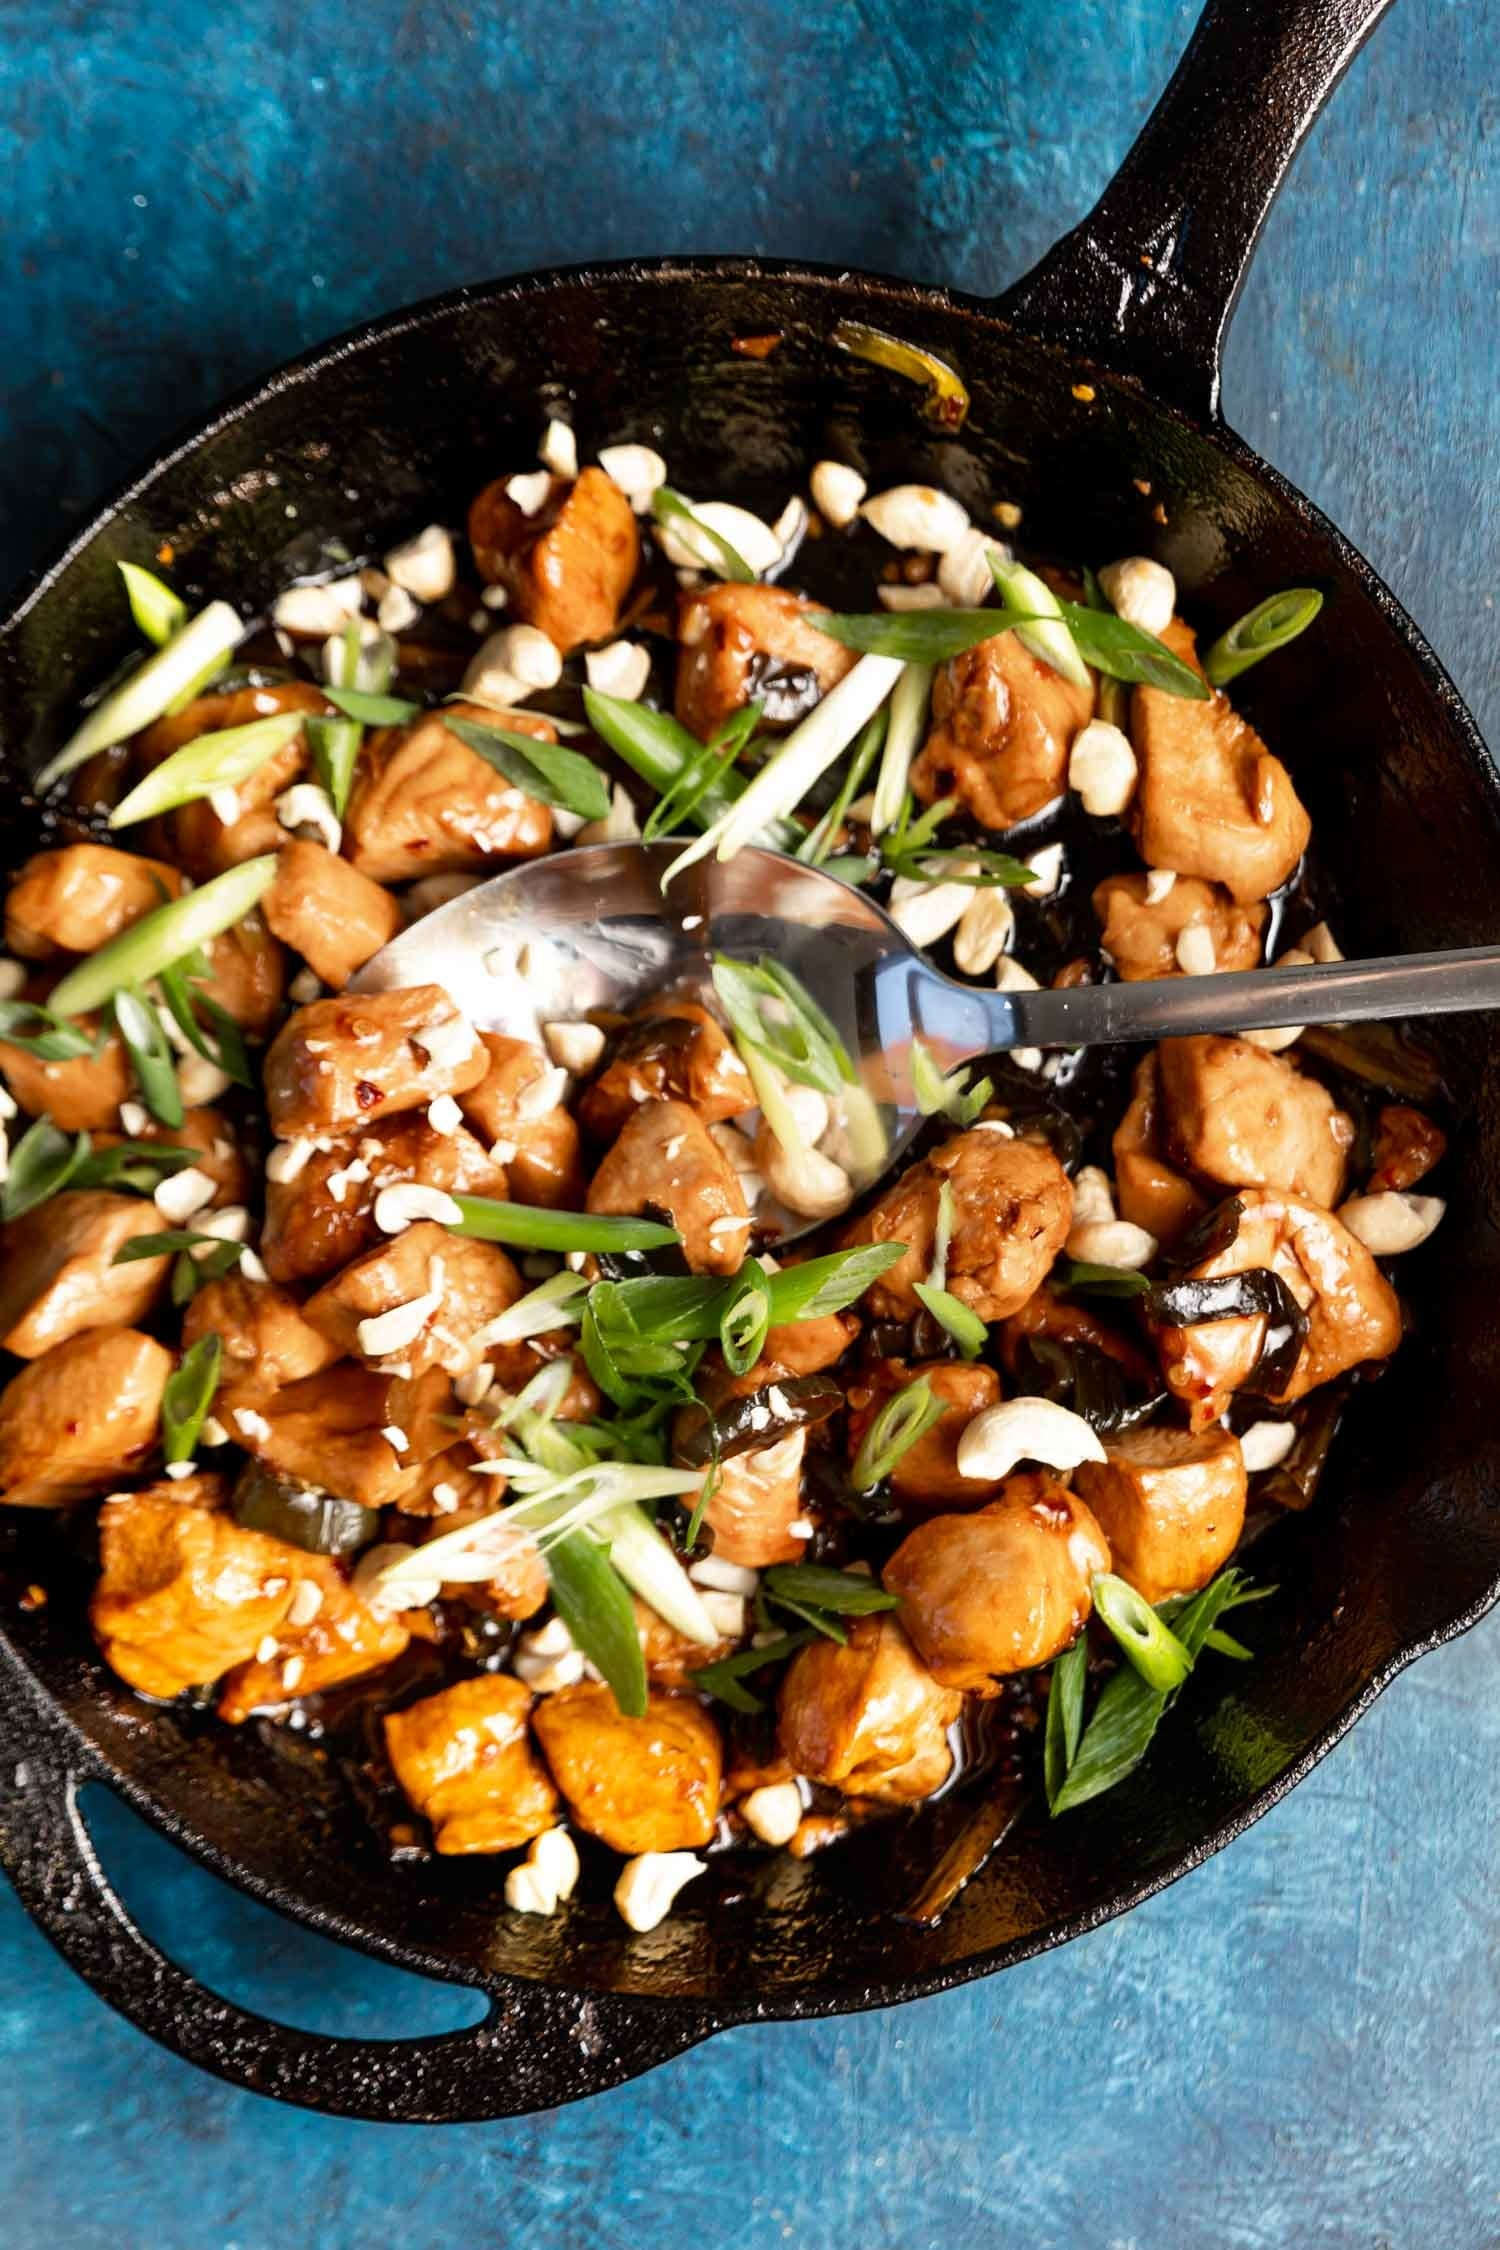 A skillet of Kung Pao chicken with cashew nuts and scallions.